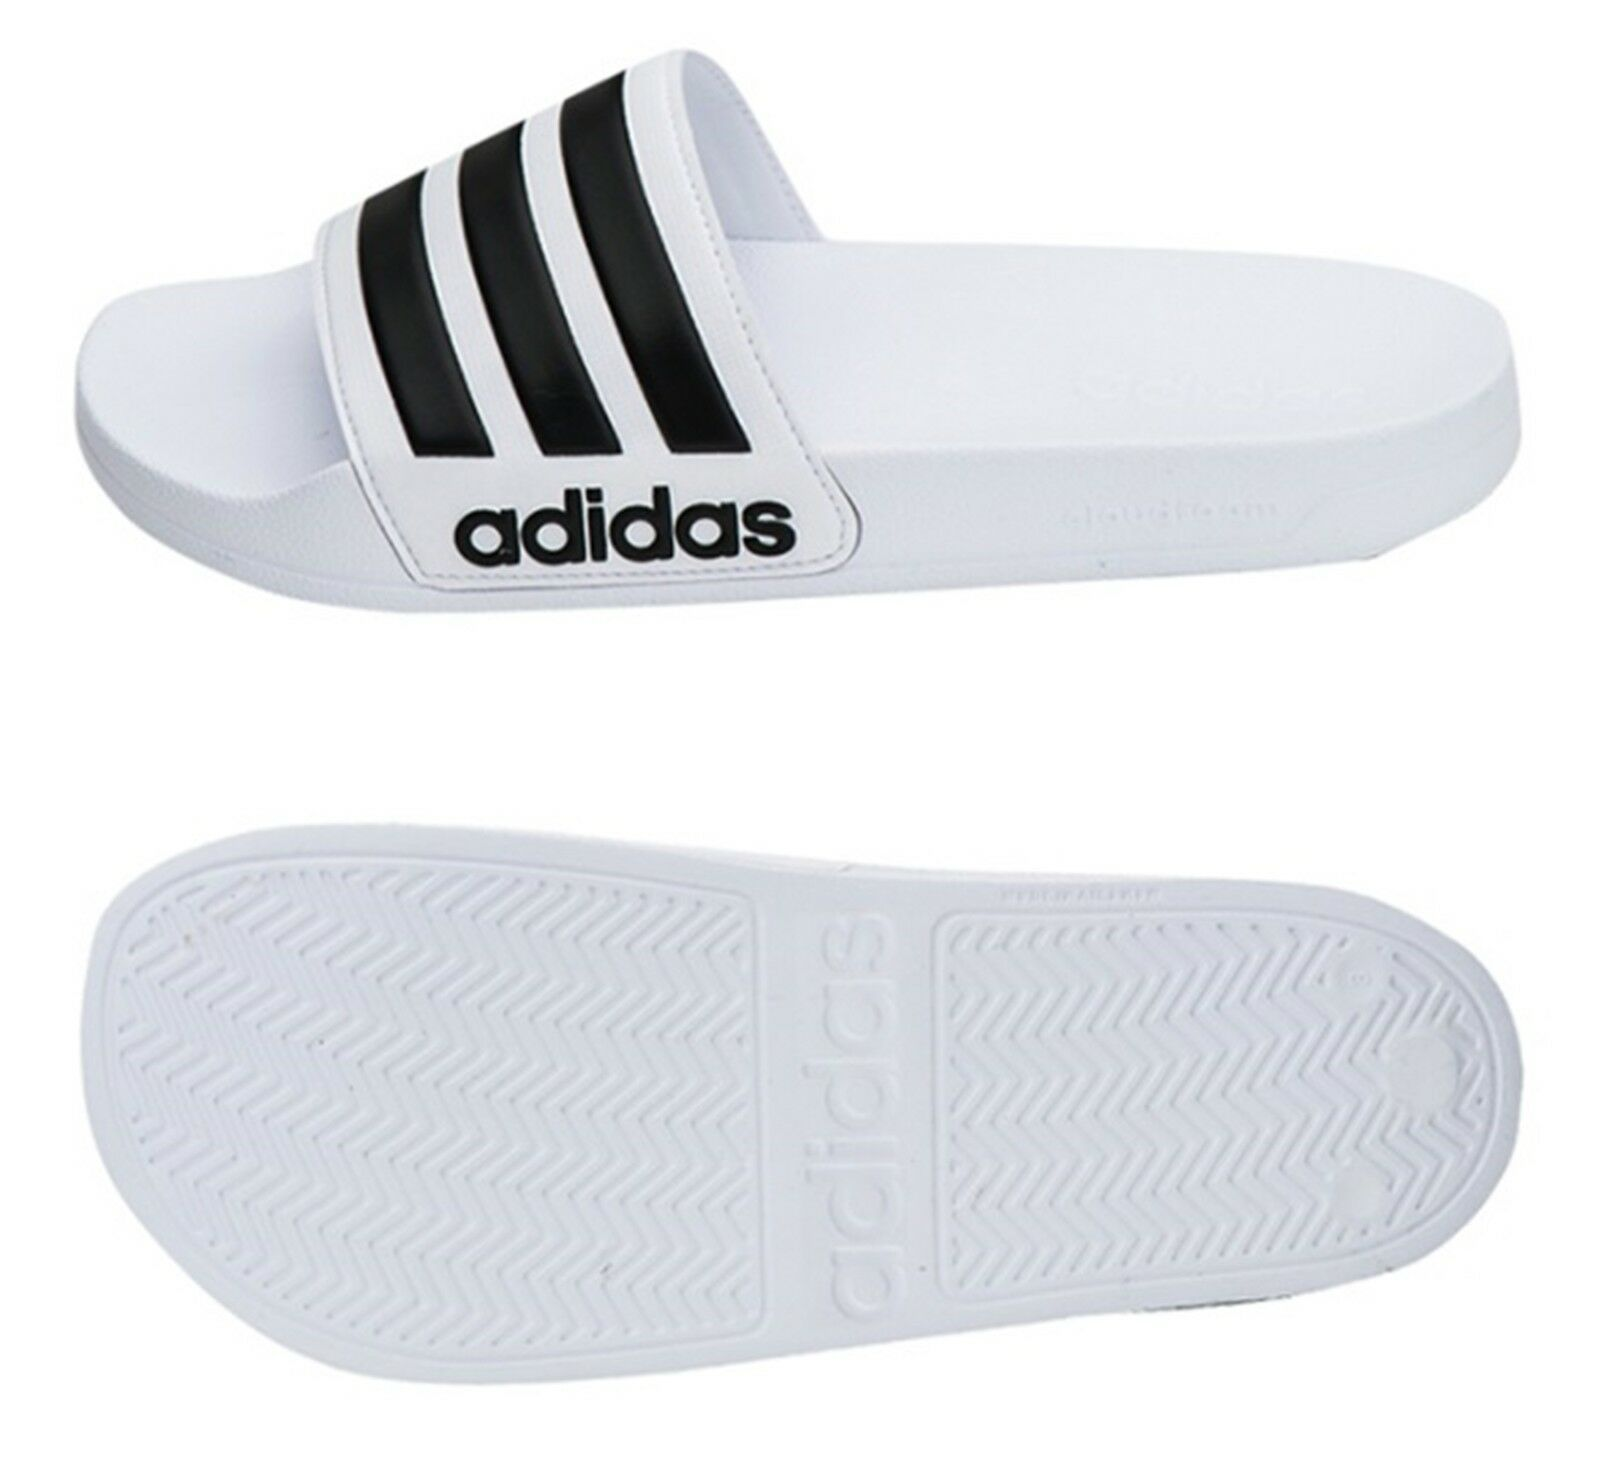 Adidas Men Adilette Cloudfoam Slipper Shoes White Beach Sandalias con tobogán AQ1702